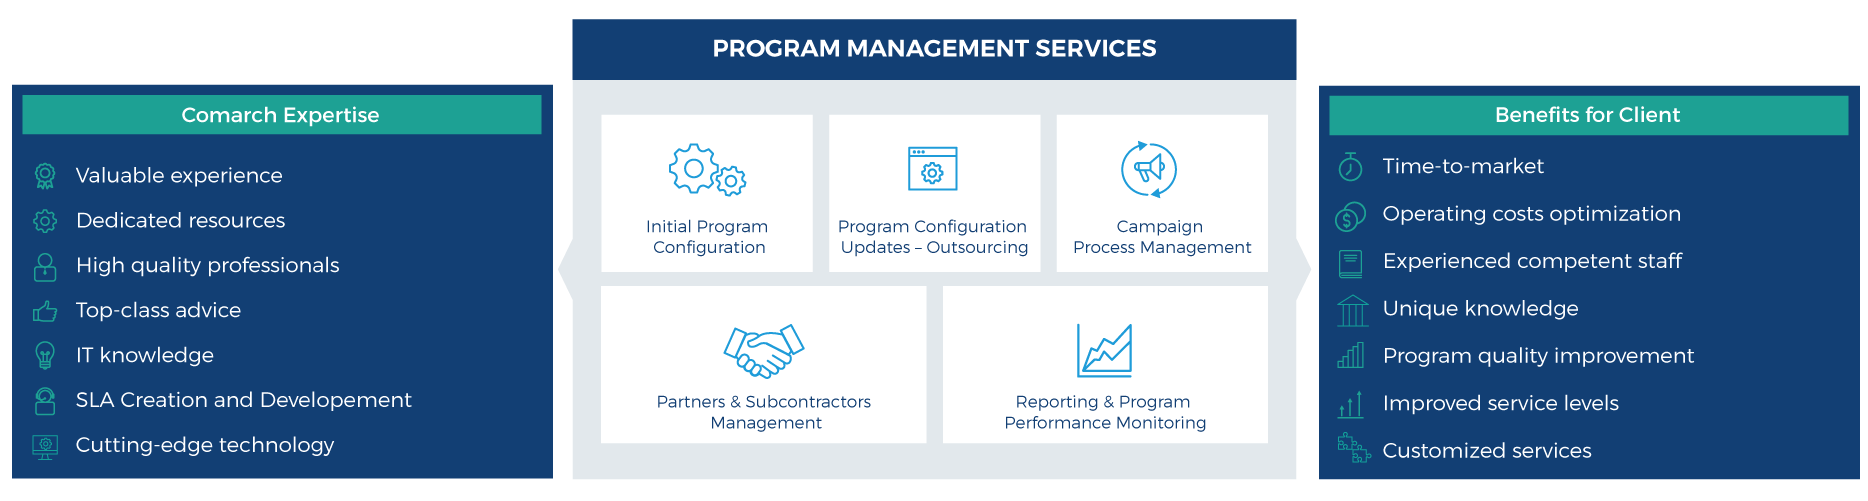 Program Management Services